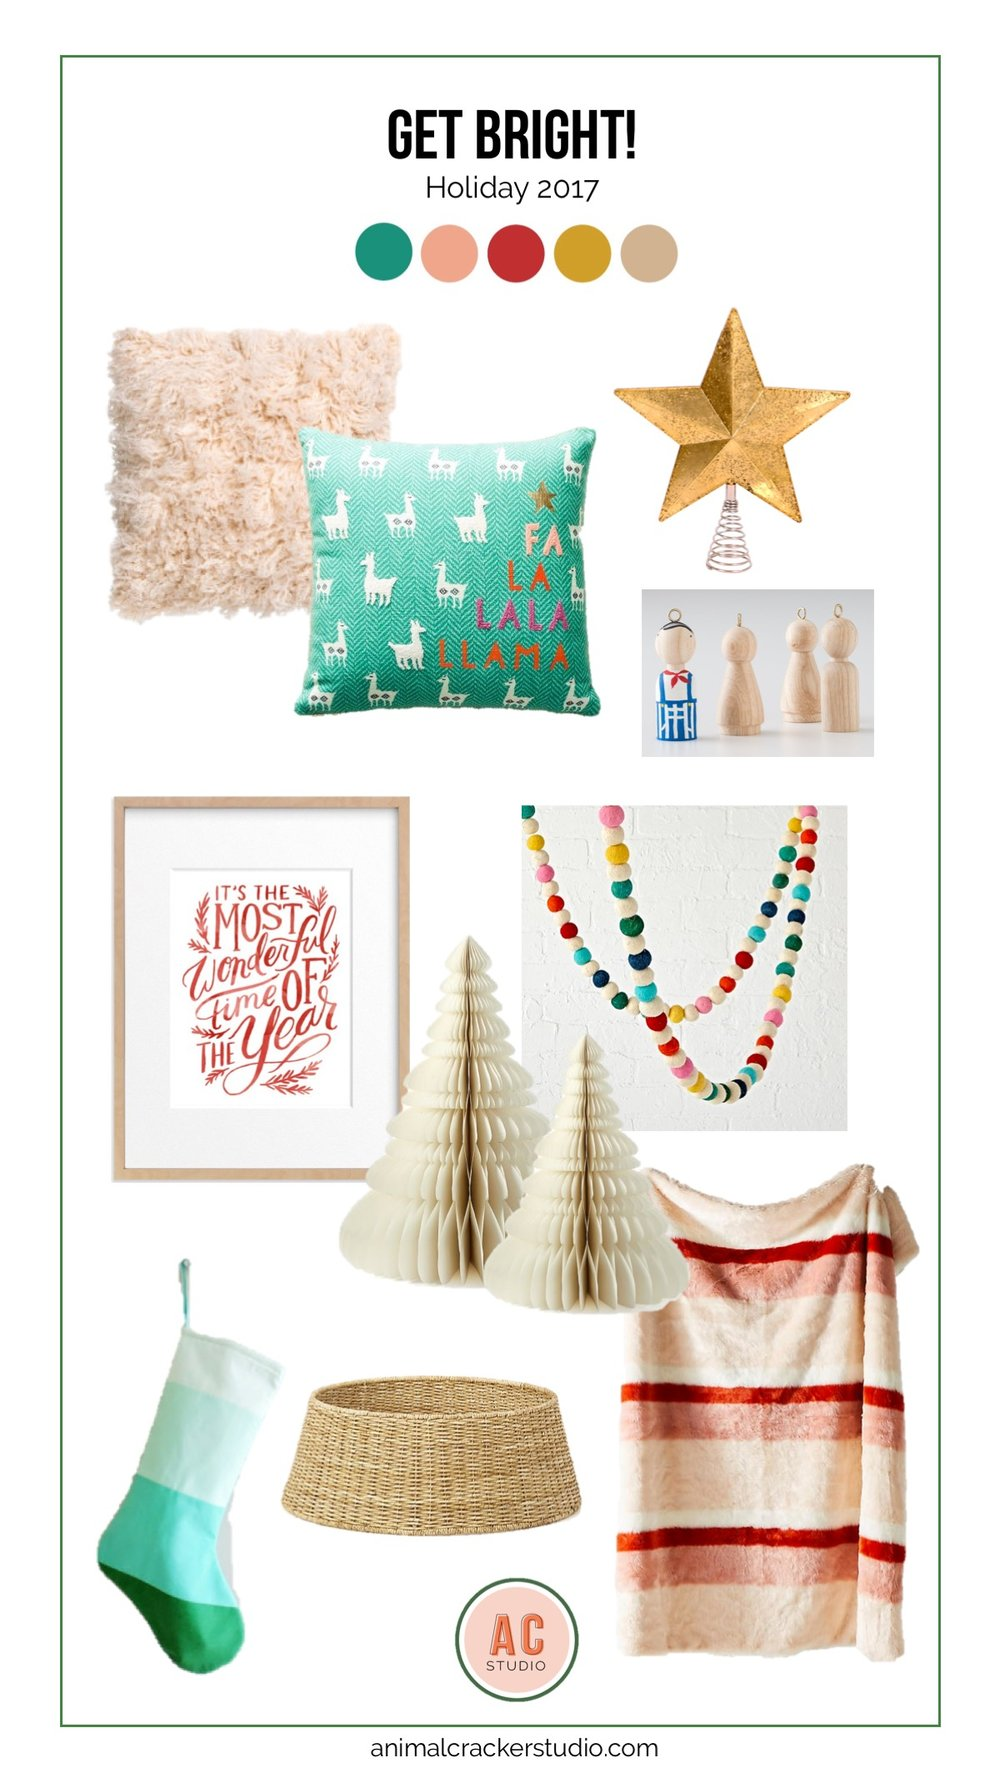 Sources (P.S. there are a couple of affiliate links here, just saying!): Pink fuzzy pillow, llama pillow (this says no longer available but check your local store because I just saw them last week), star topper, DIY ornament kit, felt garland, fuzzy throw, basket tree collar, stocking, paper trees, wonderful print.